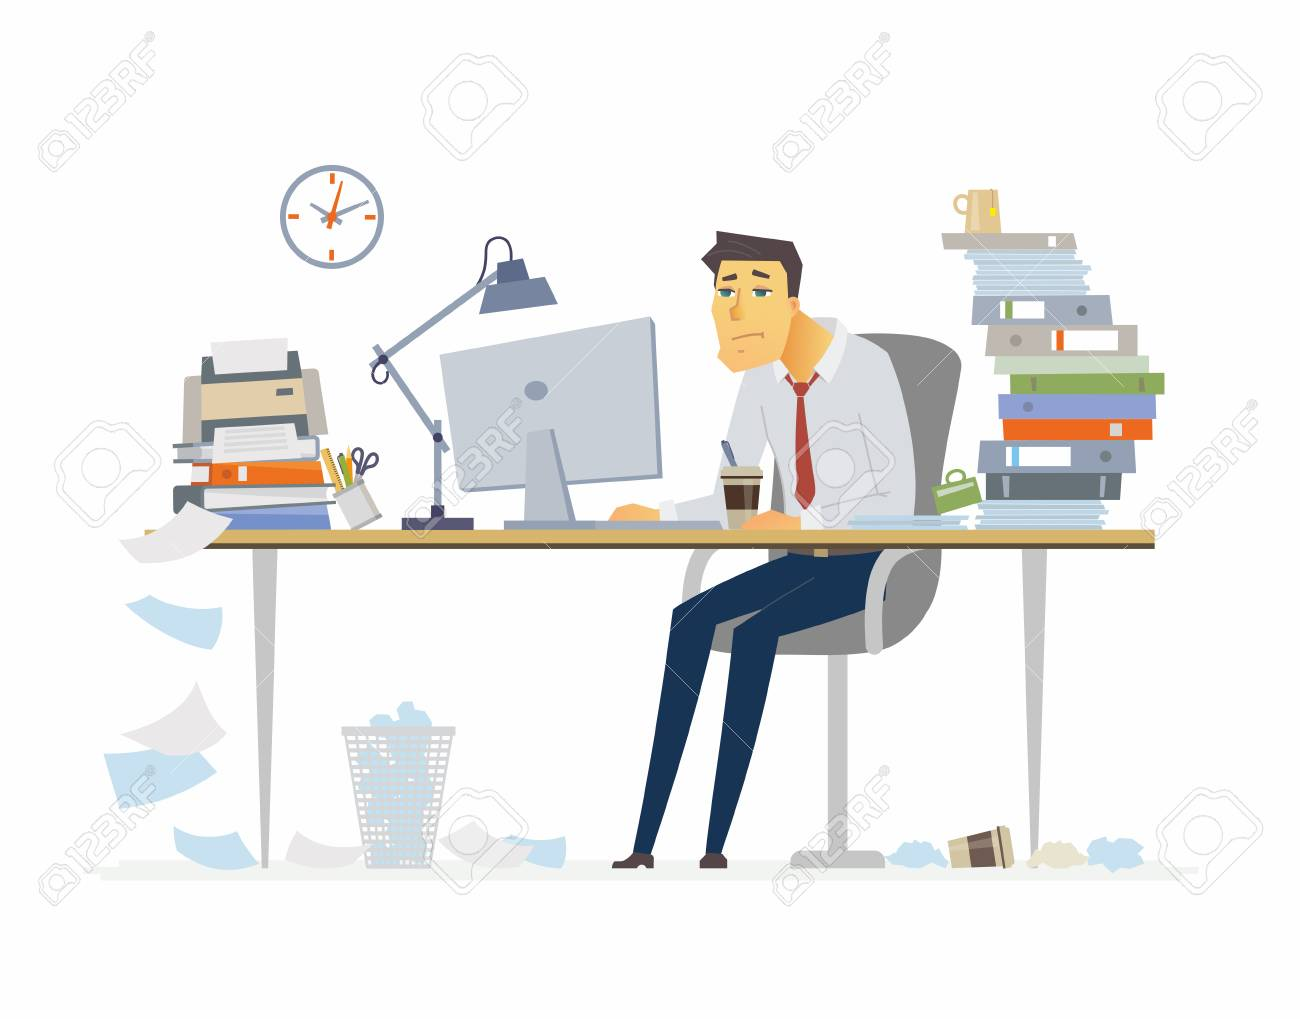 Tired office worker - modern cartoon people characters illustration on white background. Young man sitting at the desk and drinking coffee. A workplace with a lot of papers, folders. Deadline concept. - 93087189